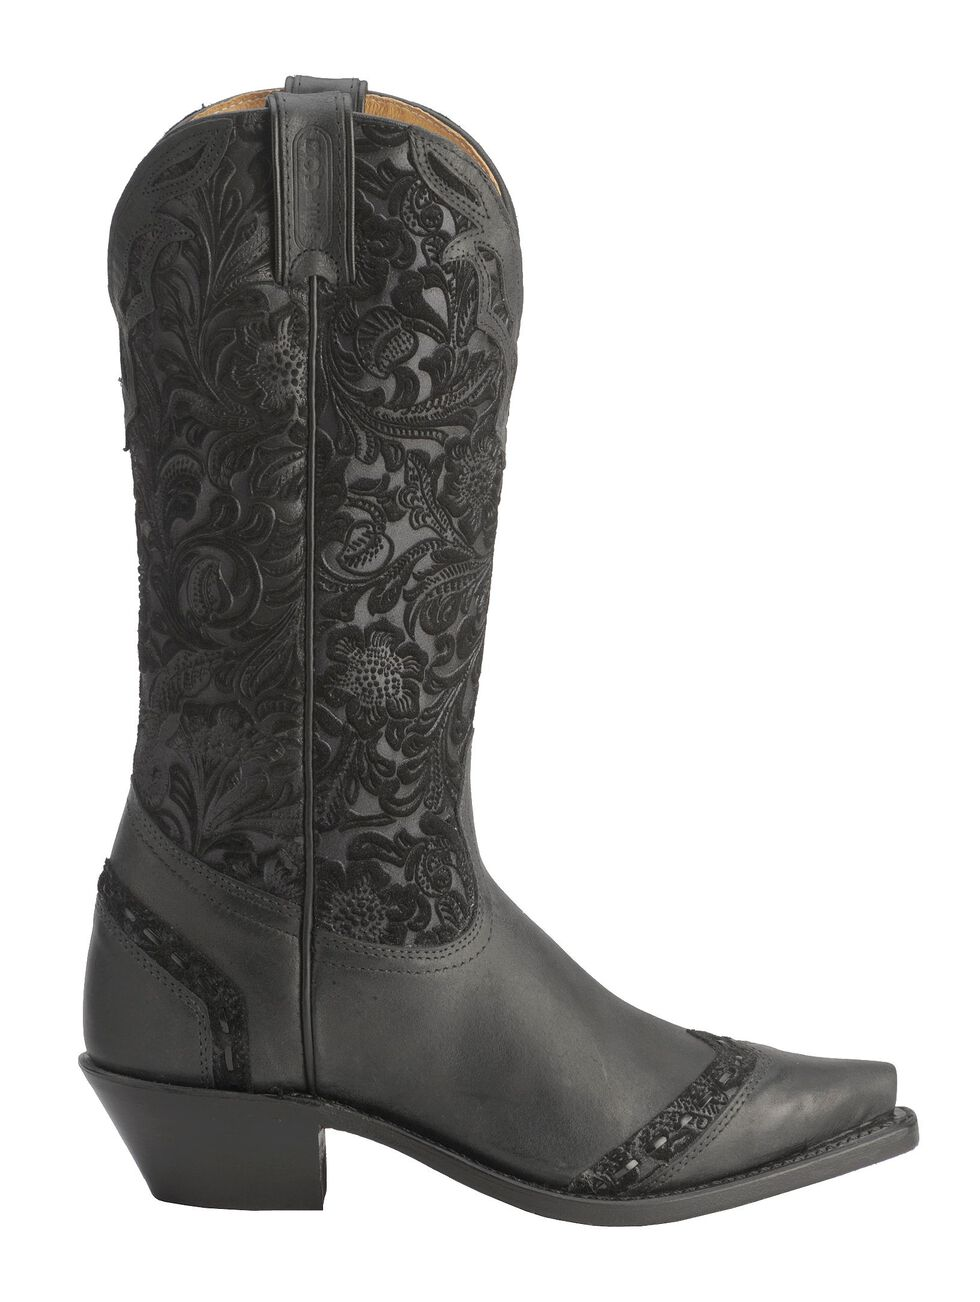 Boulet Tooled Midnight Cowgirl Boots - Snip Toe, Black, hi-res